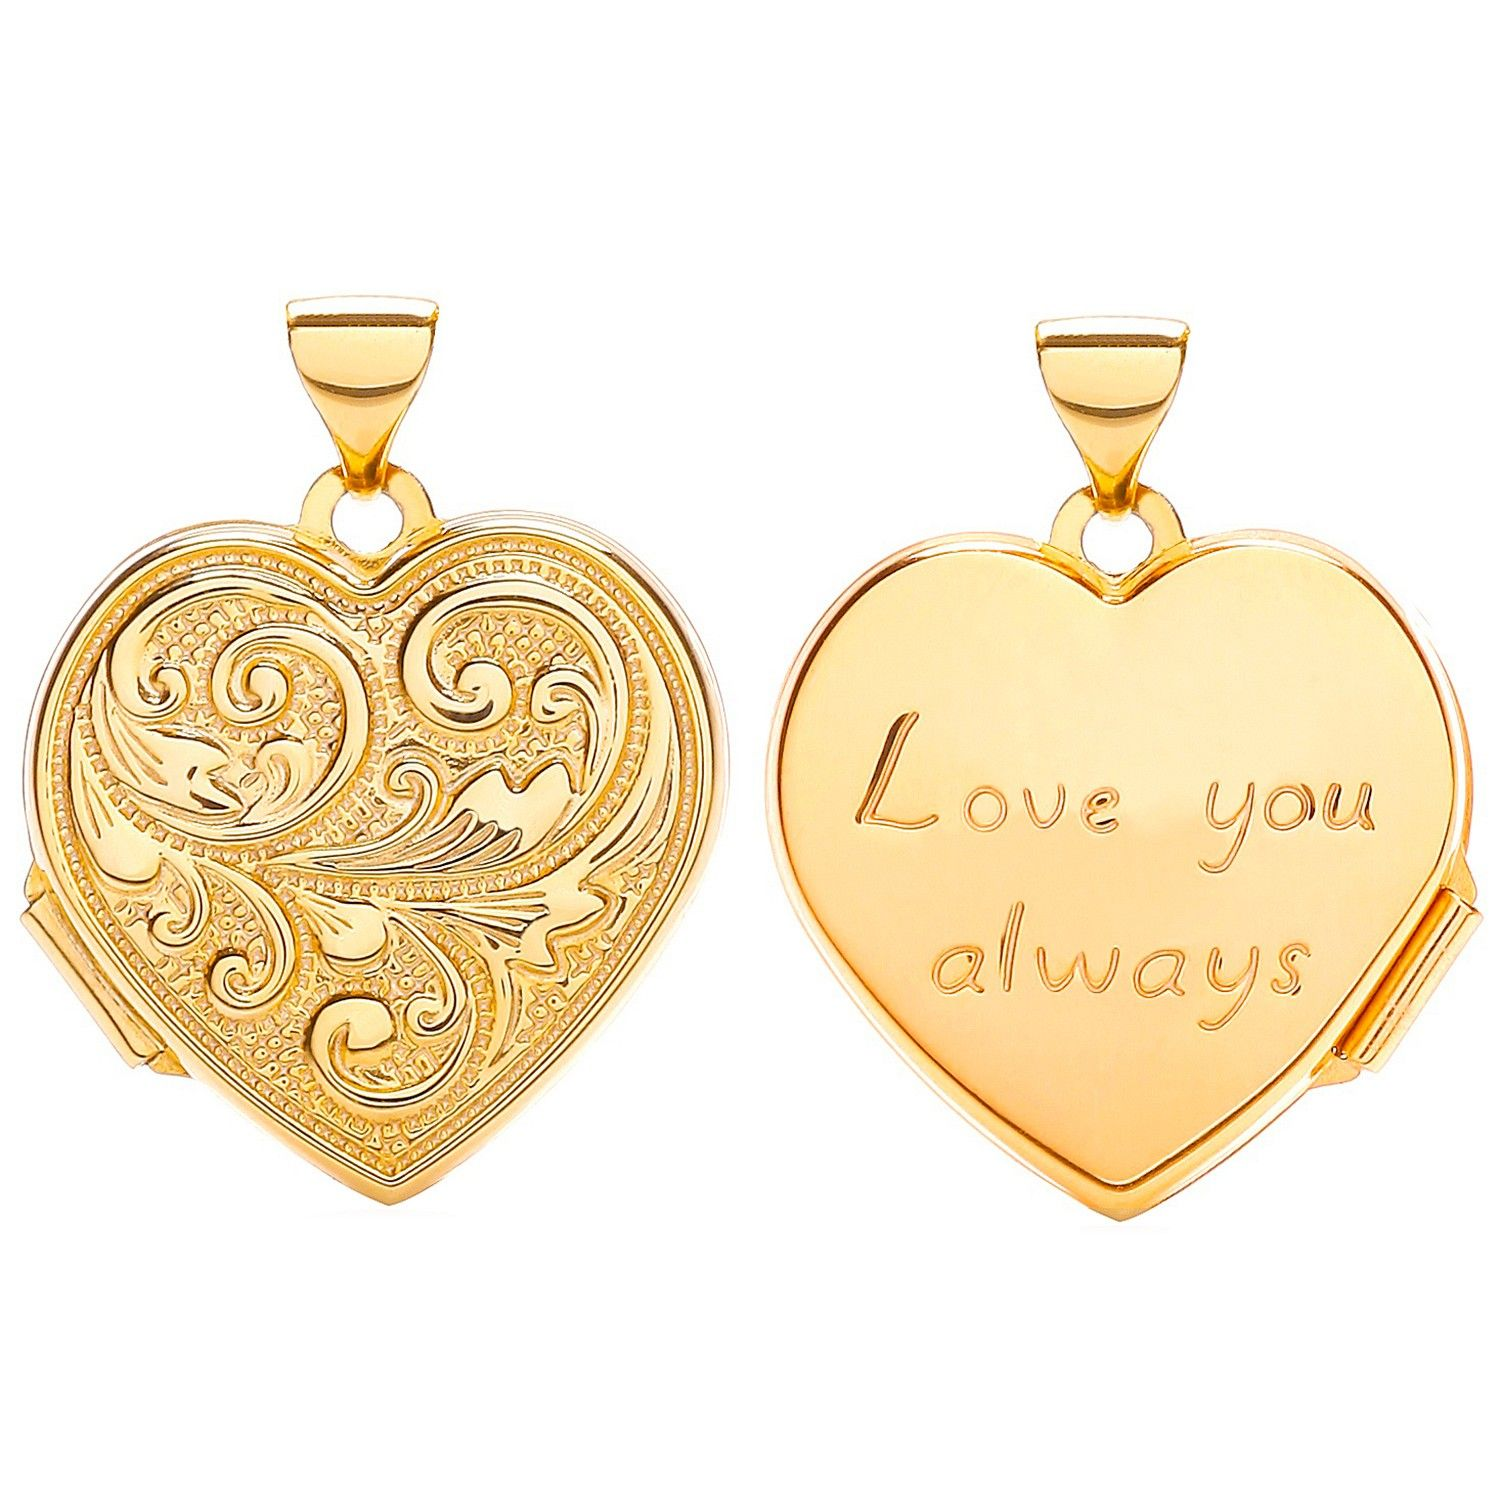 9ct Yellow Gold Heart Double Sided Locket Love You  18.0 x 24.0m Gold